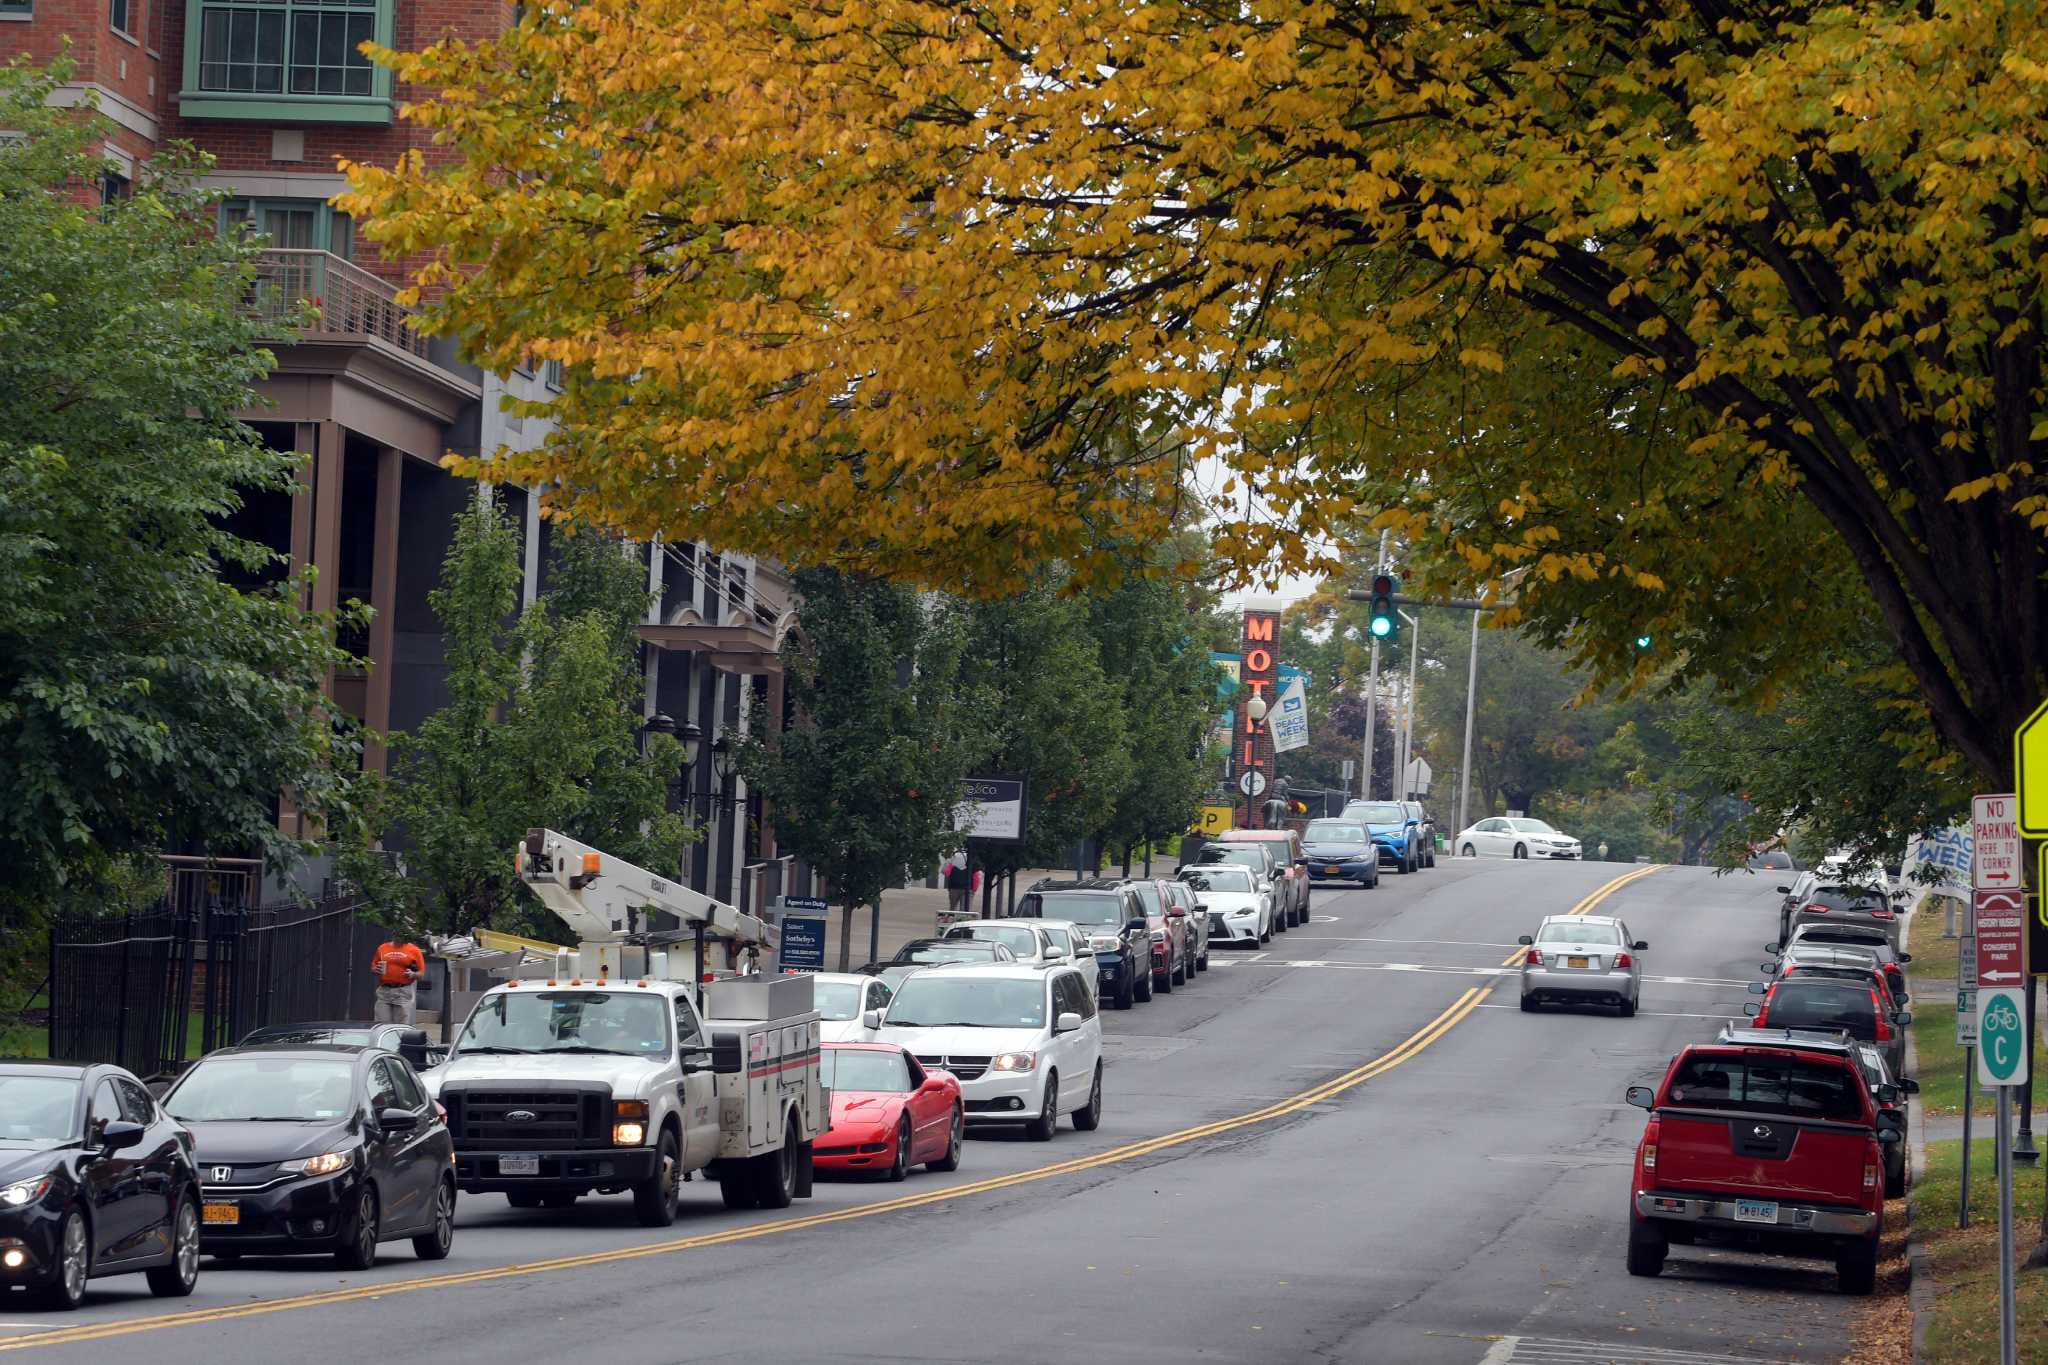 saratoga springs girls Girl scouts saratoga springs ny this website was established so that girl scouts, leaders and parents from the greater saratoga area in ny state will have a place to look for more information about scouting as well as about upcoming events.